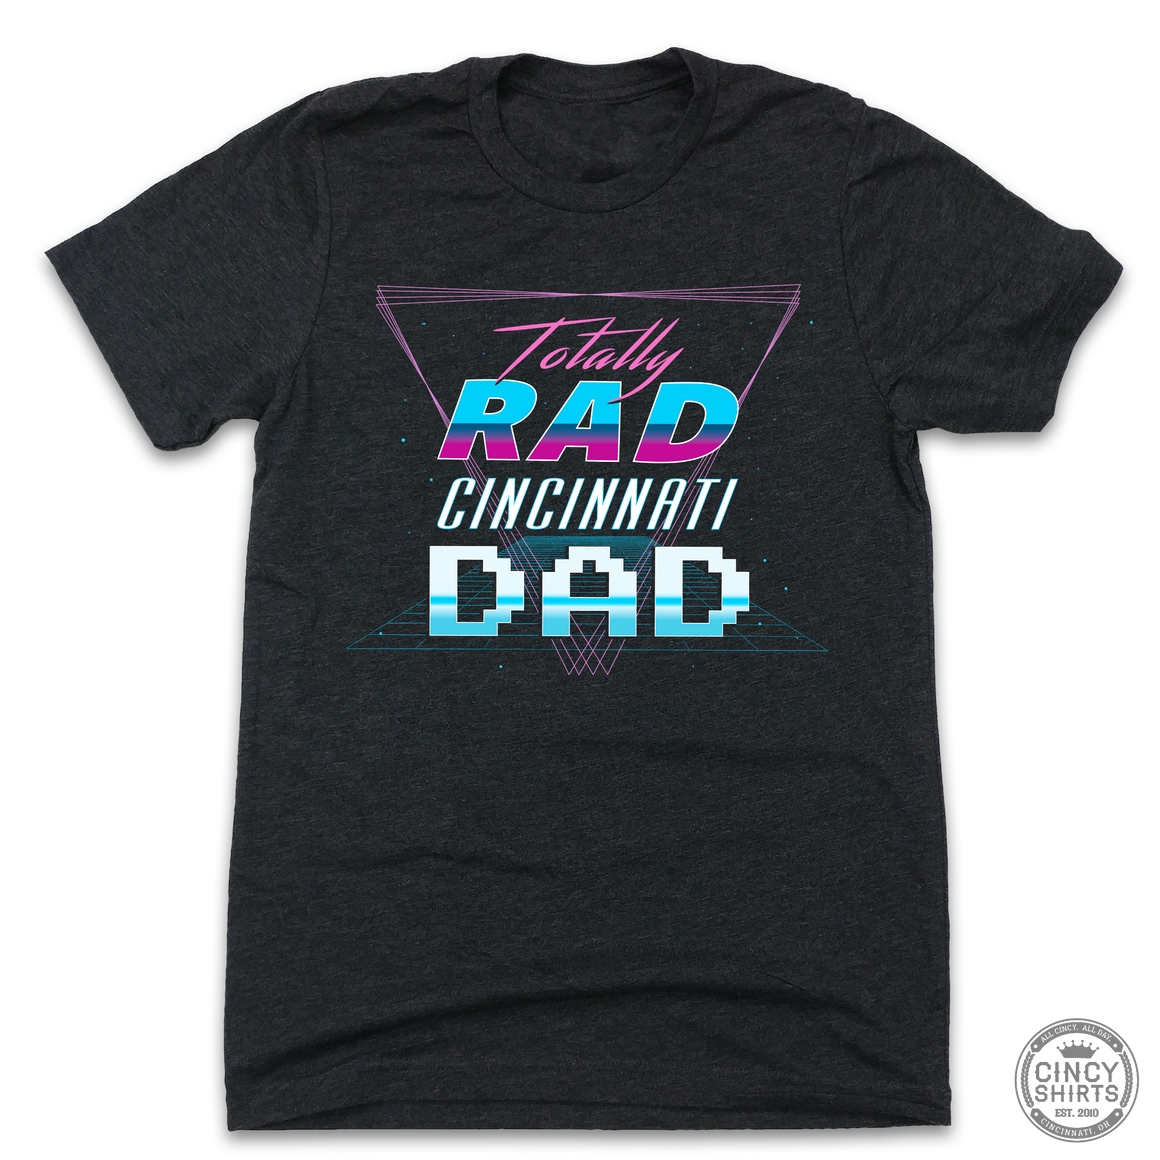 Totally Rad Cincinnati Dad - Cincy Shirts